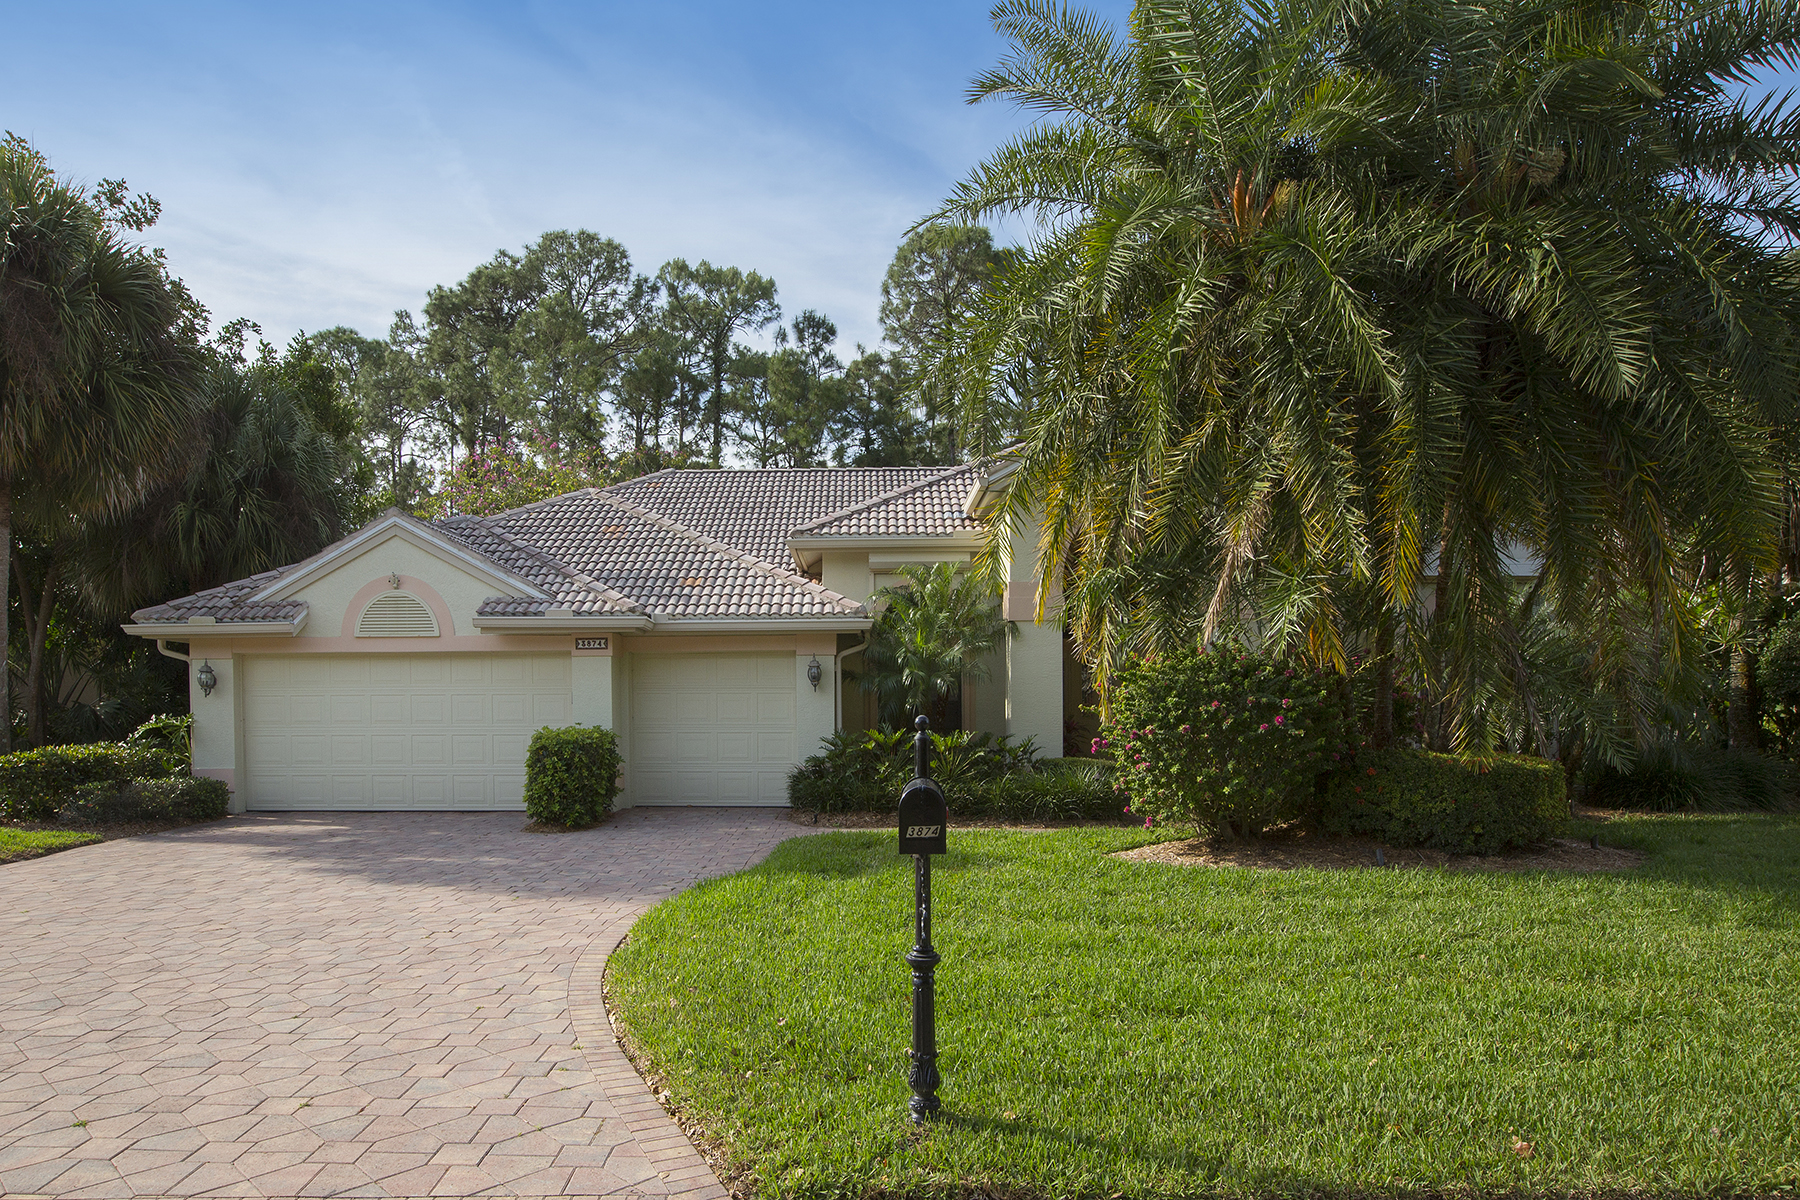 Single Family Home for Sale at Naples 3874 Midshore Dr Naples, Florida, 34109 United States